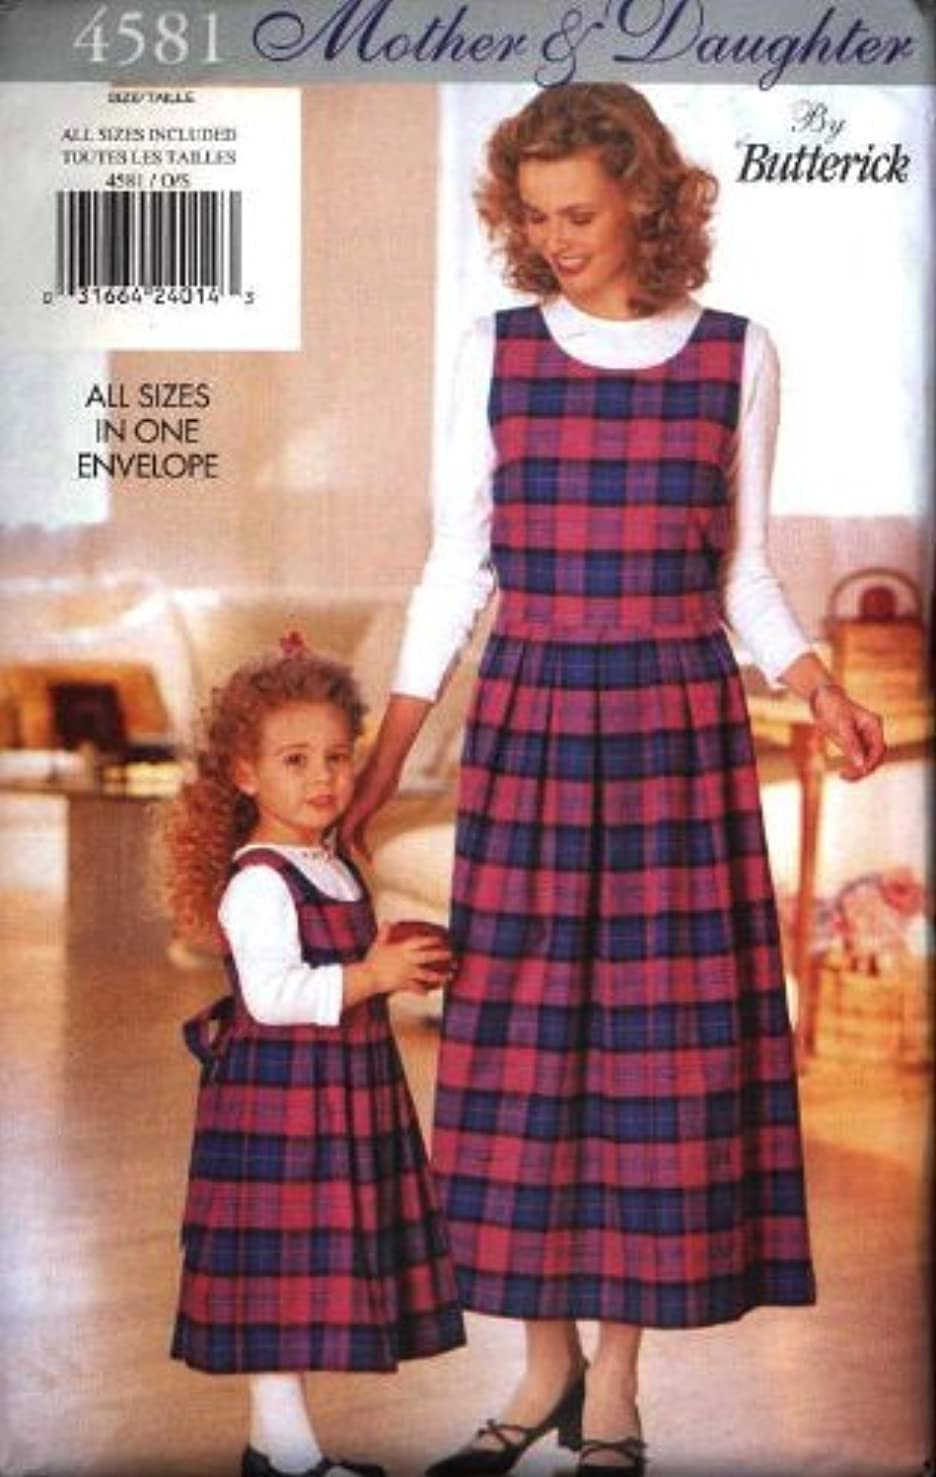 Butterick Sewing Pattern 4581 Mother & Daughter Jumper & Top, Misses' Sizes 6-18, Girls' Sizes 2-6X